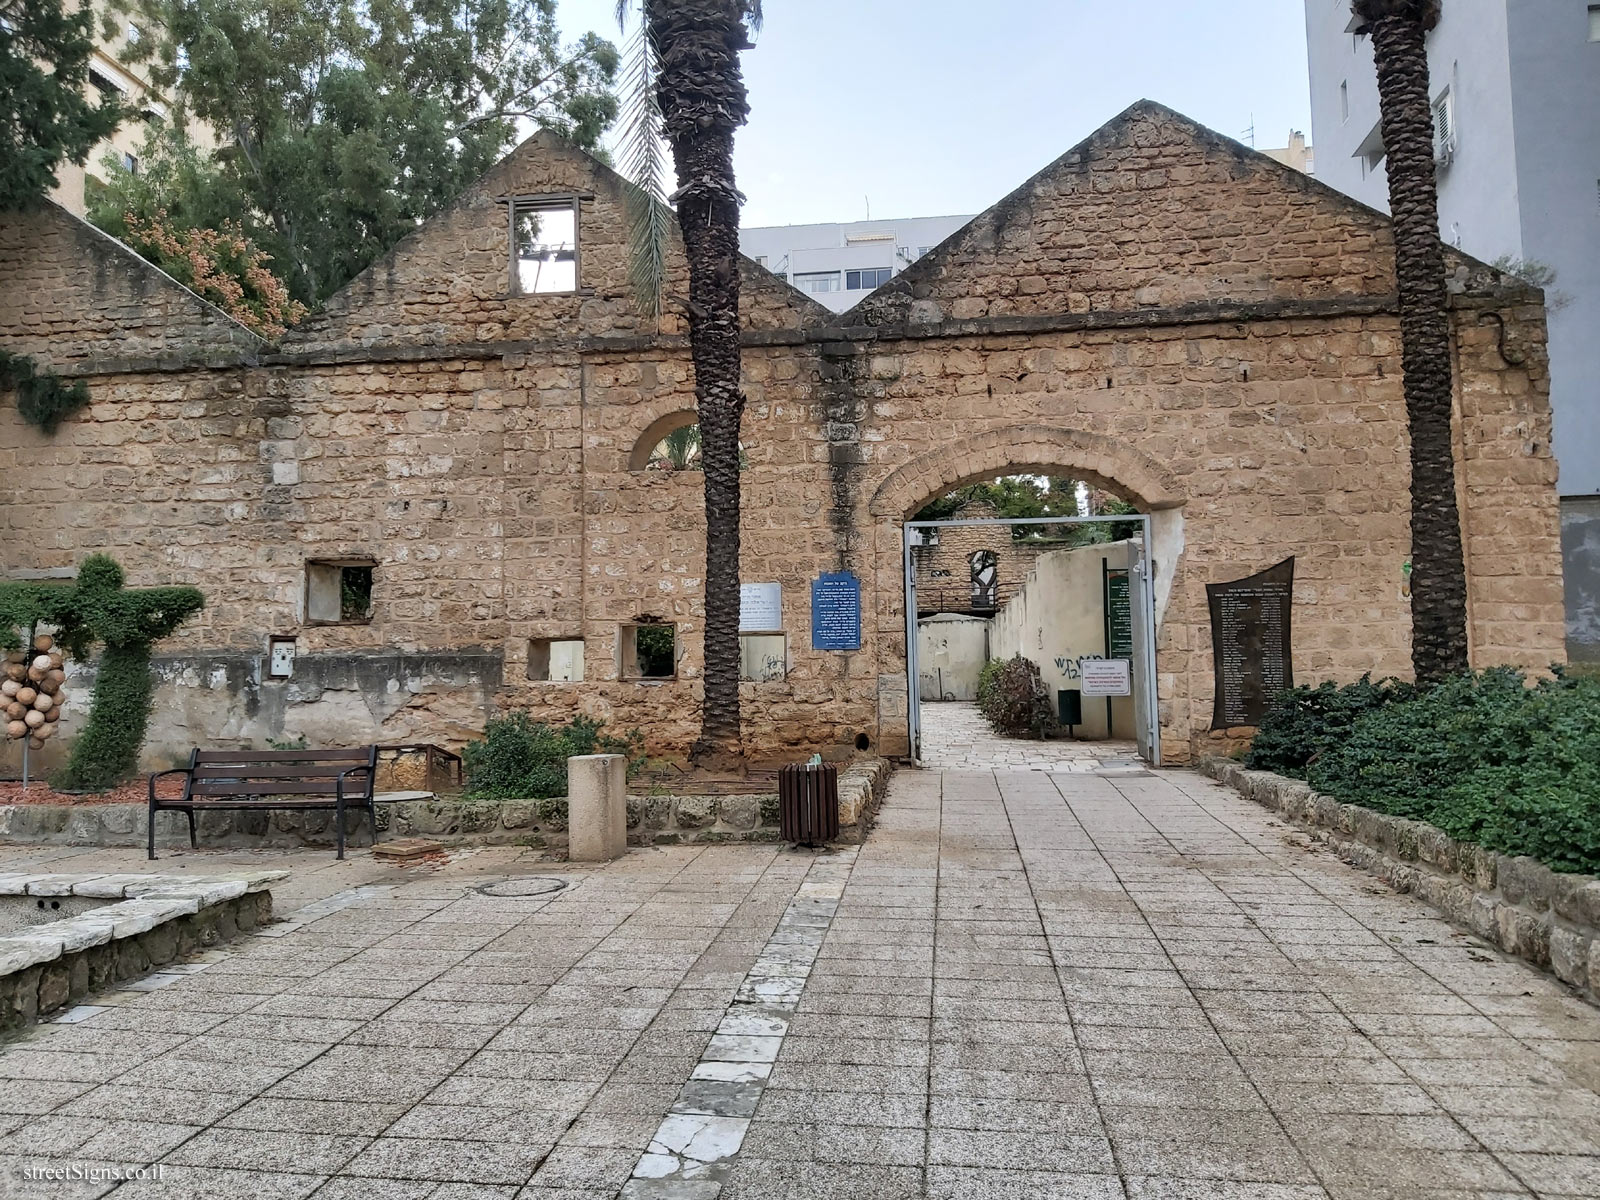 Rehovot - Heritage Sites in Israel - Rehovot Winery - Ha-Nasi ha-Rishon St 38, Rehovot, Israel